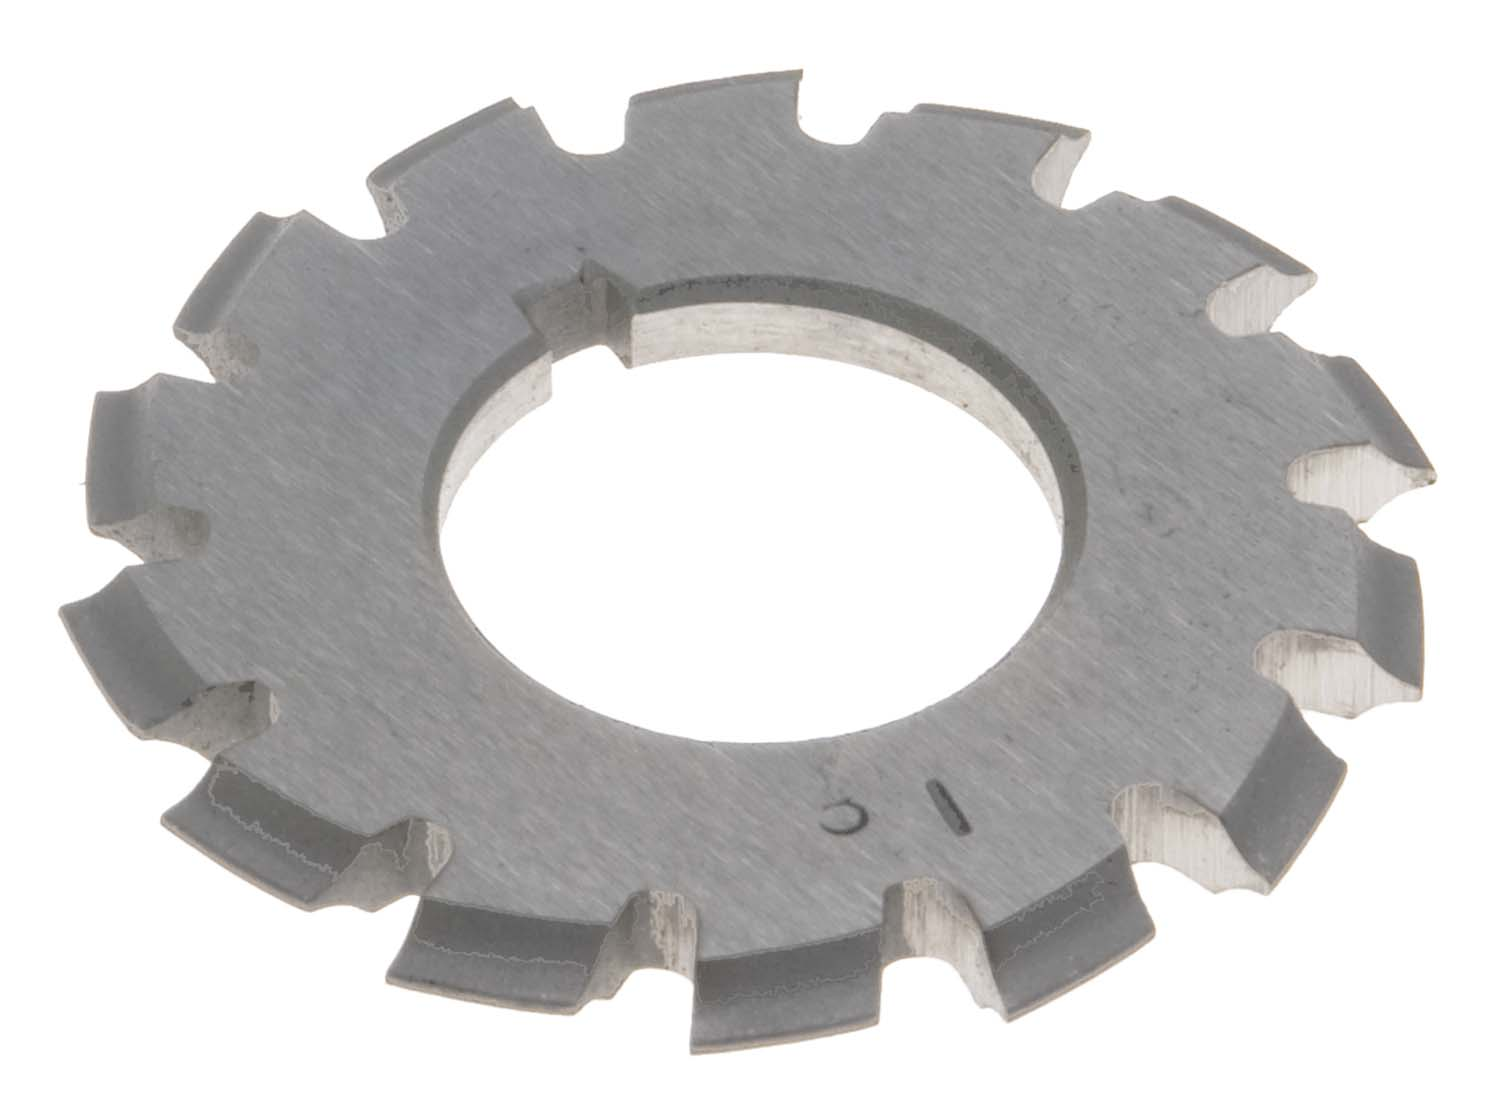 24 Diametral Pitch # 8 Involute Gear Cutter - 1 Inch ID - 14-1/2 Degree Pressure Angle